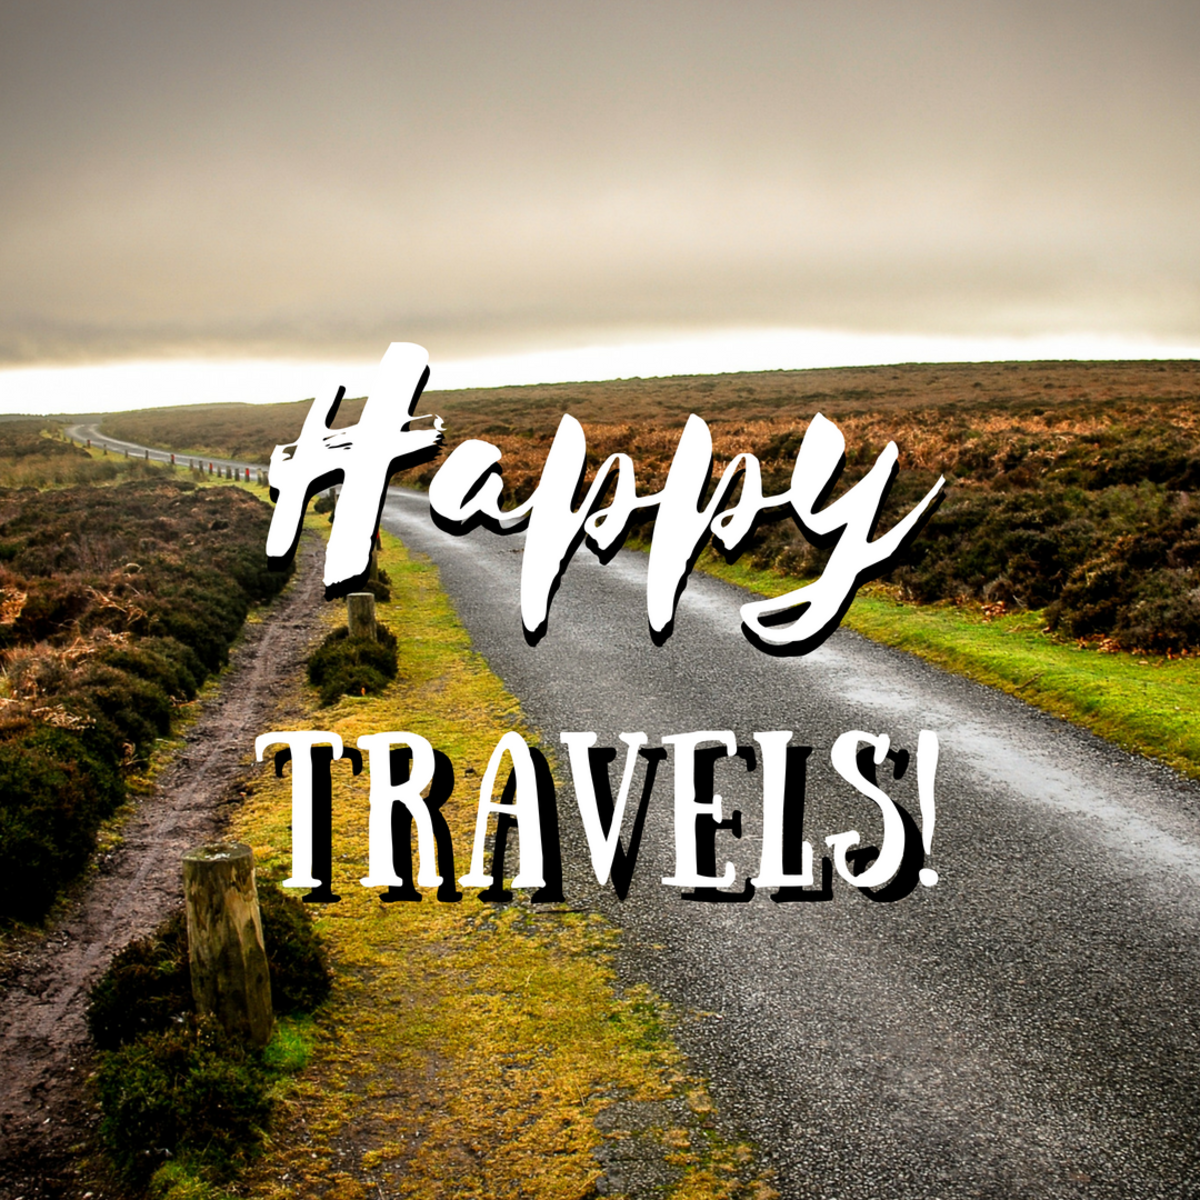 Have a safe and happy trip!